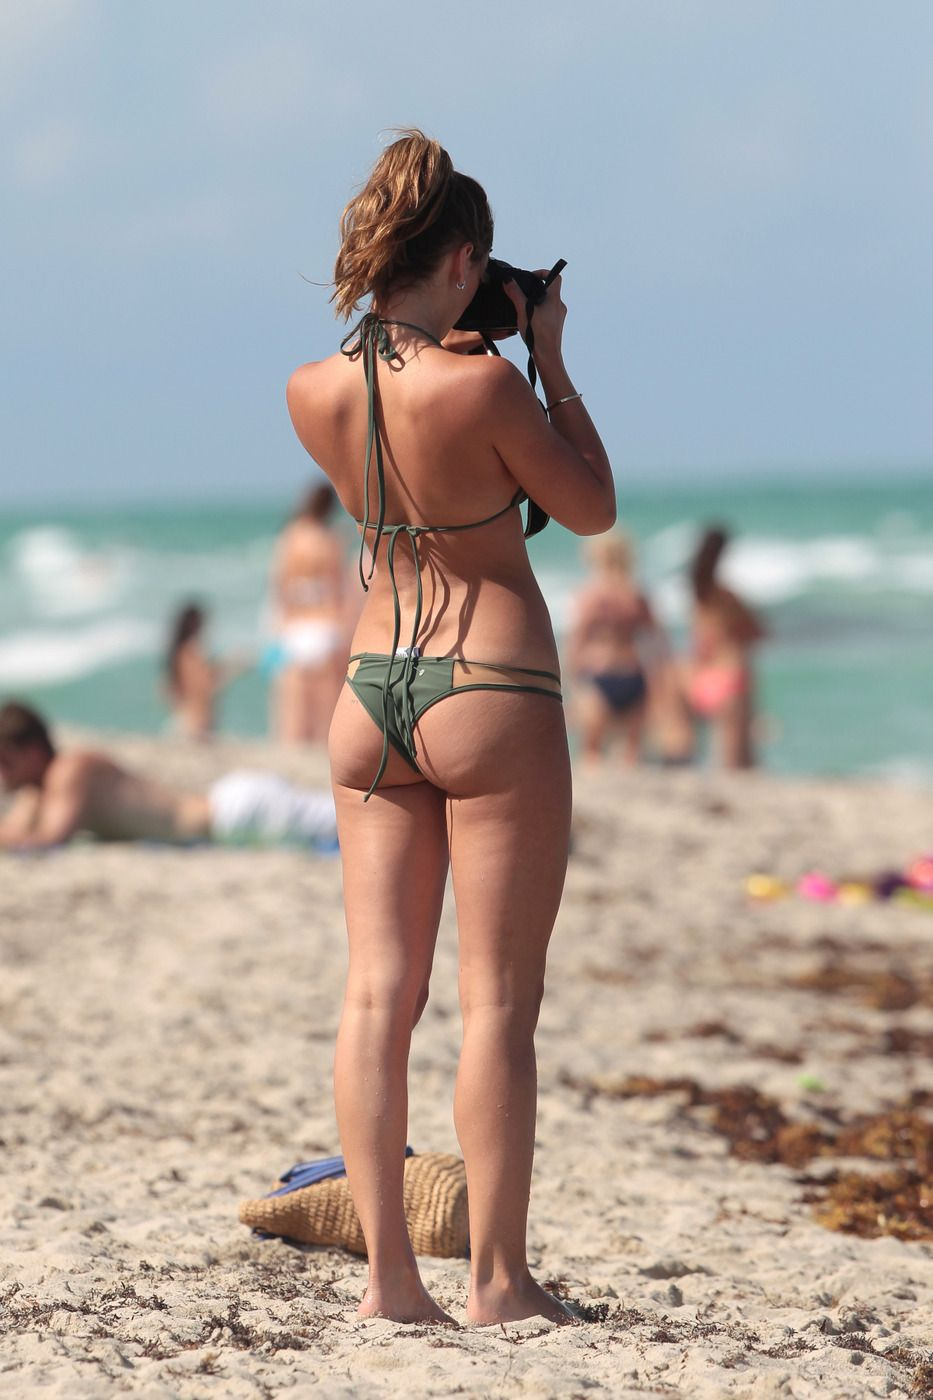 Keleigh Sperry in Bikini on the beach in Mexico Pic 19 of 35